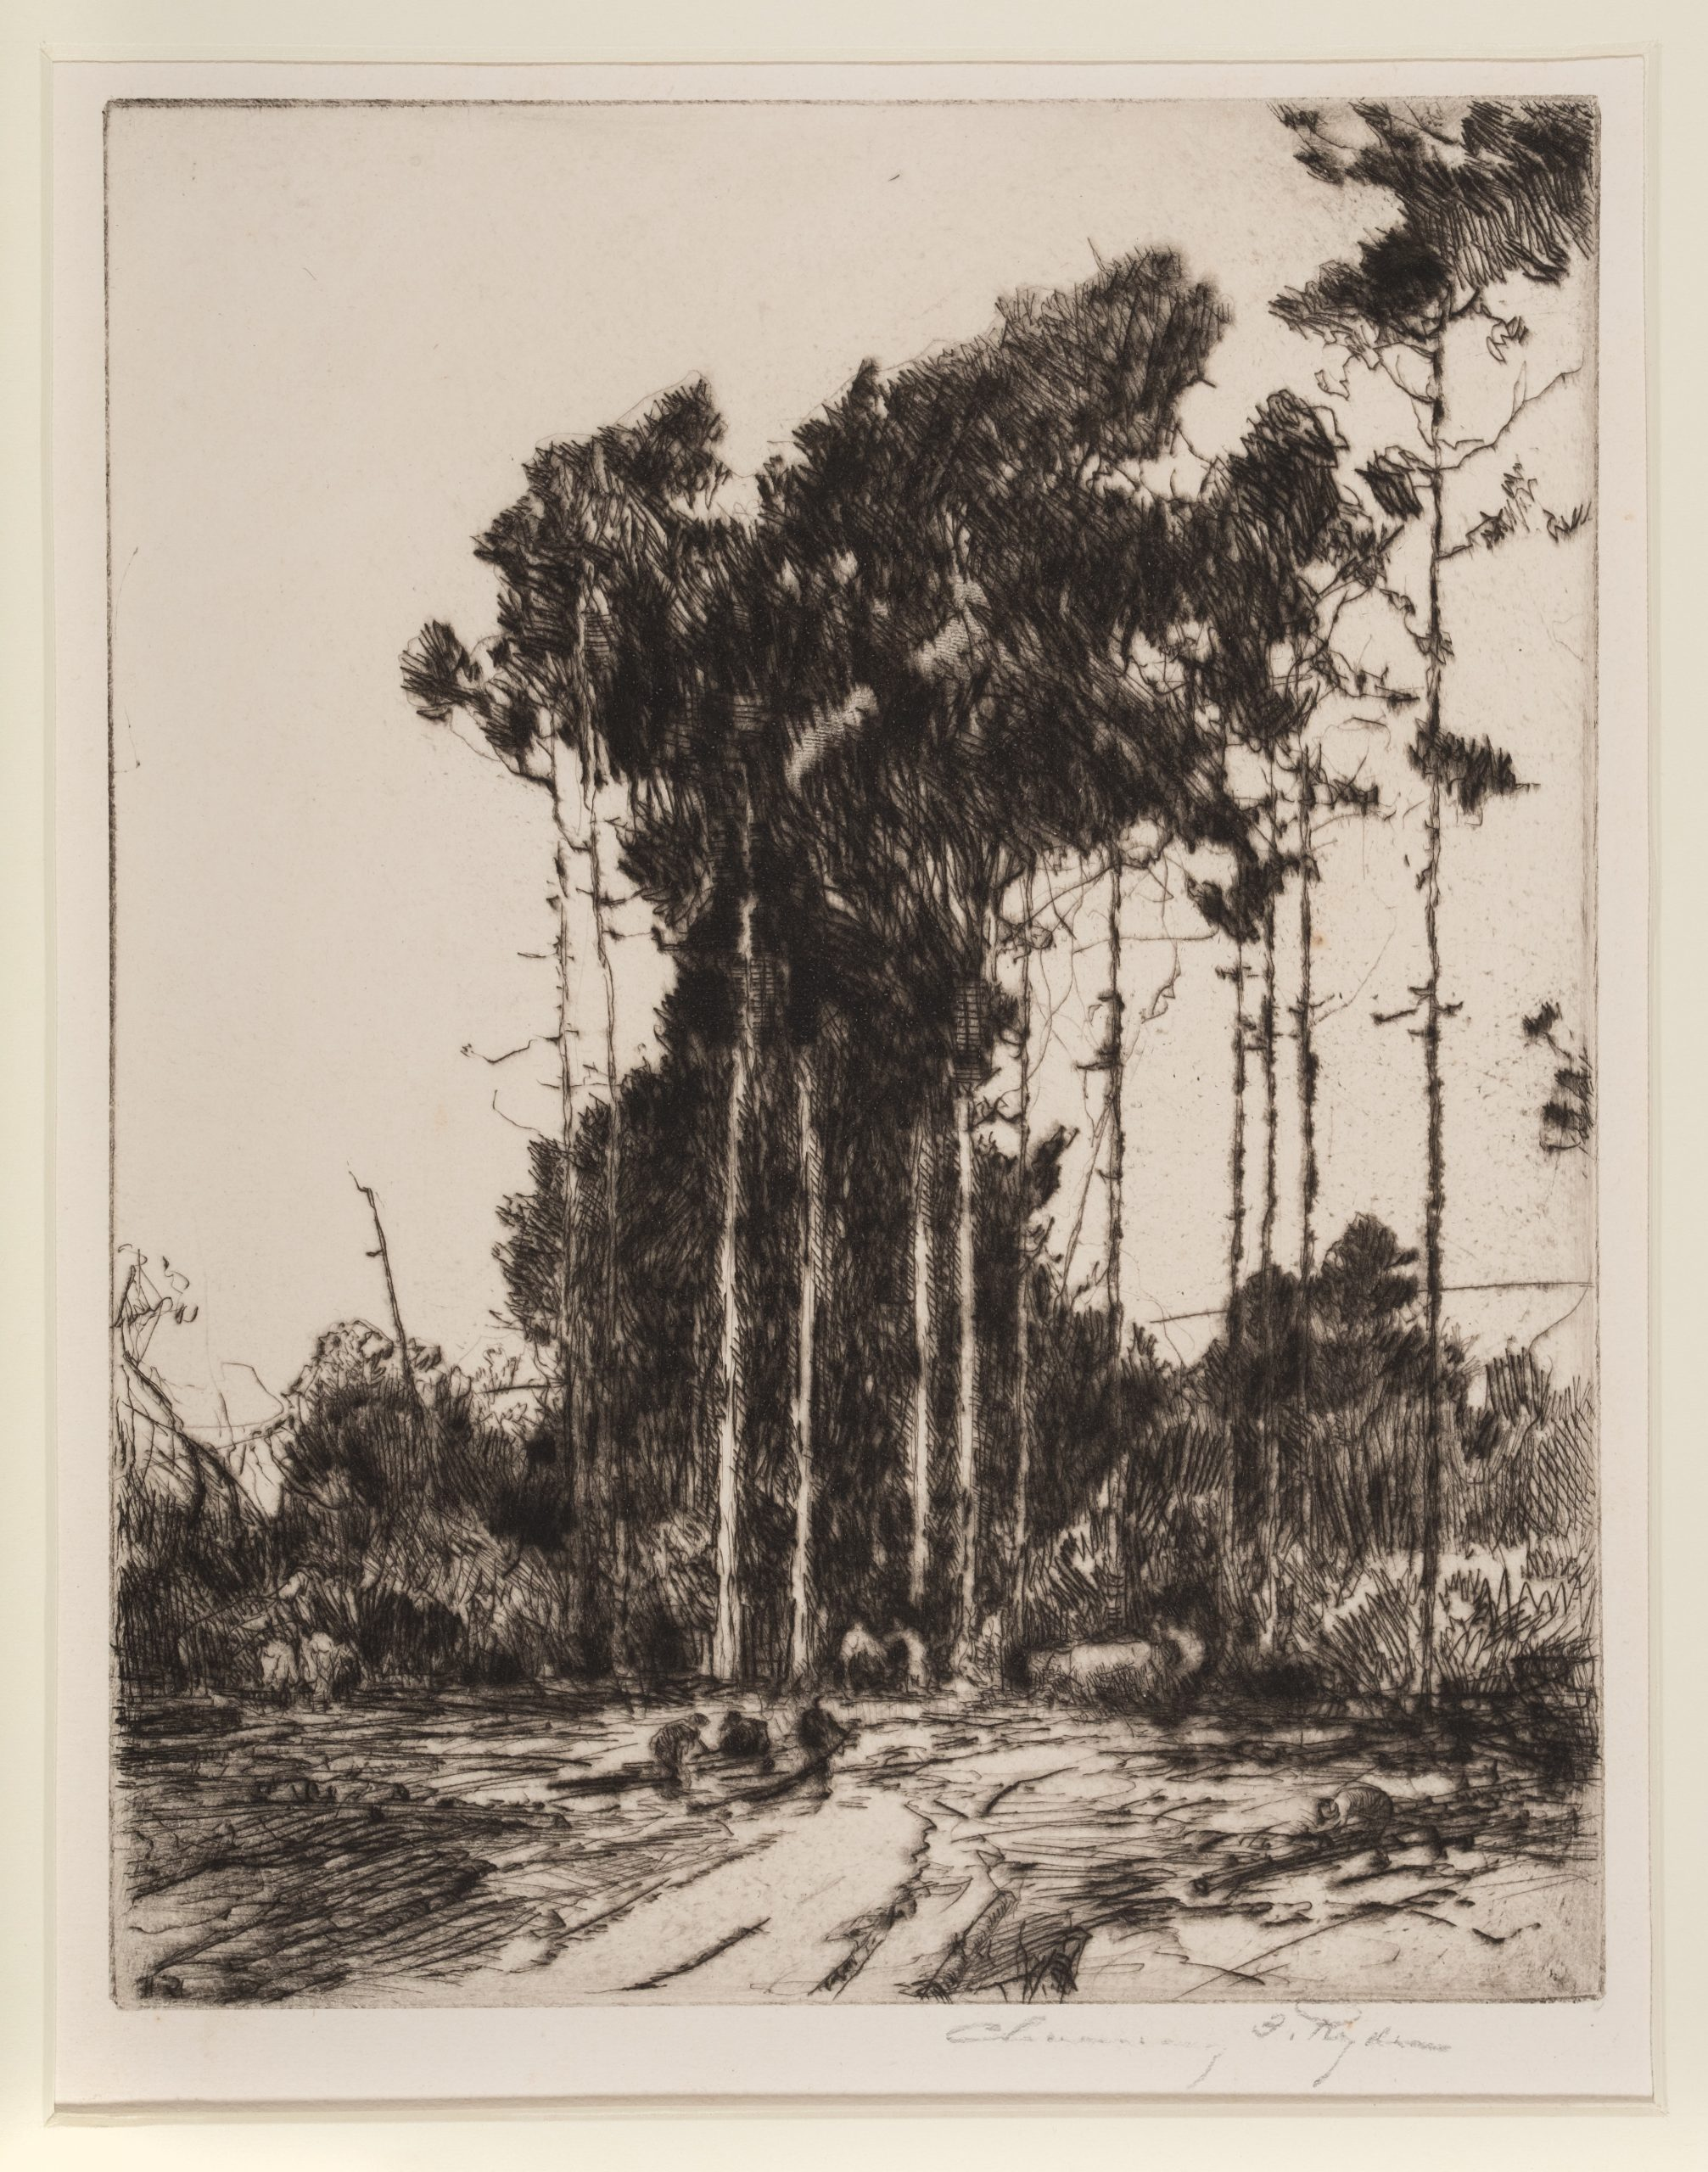 Chauncy Foster Ryder, Cutting the Pines